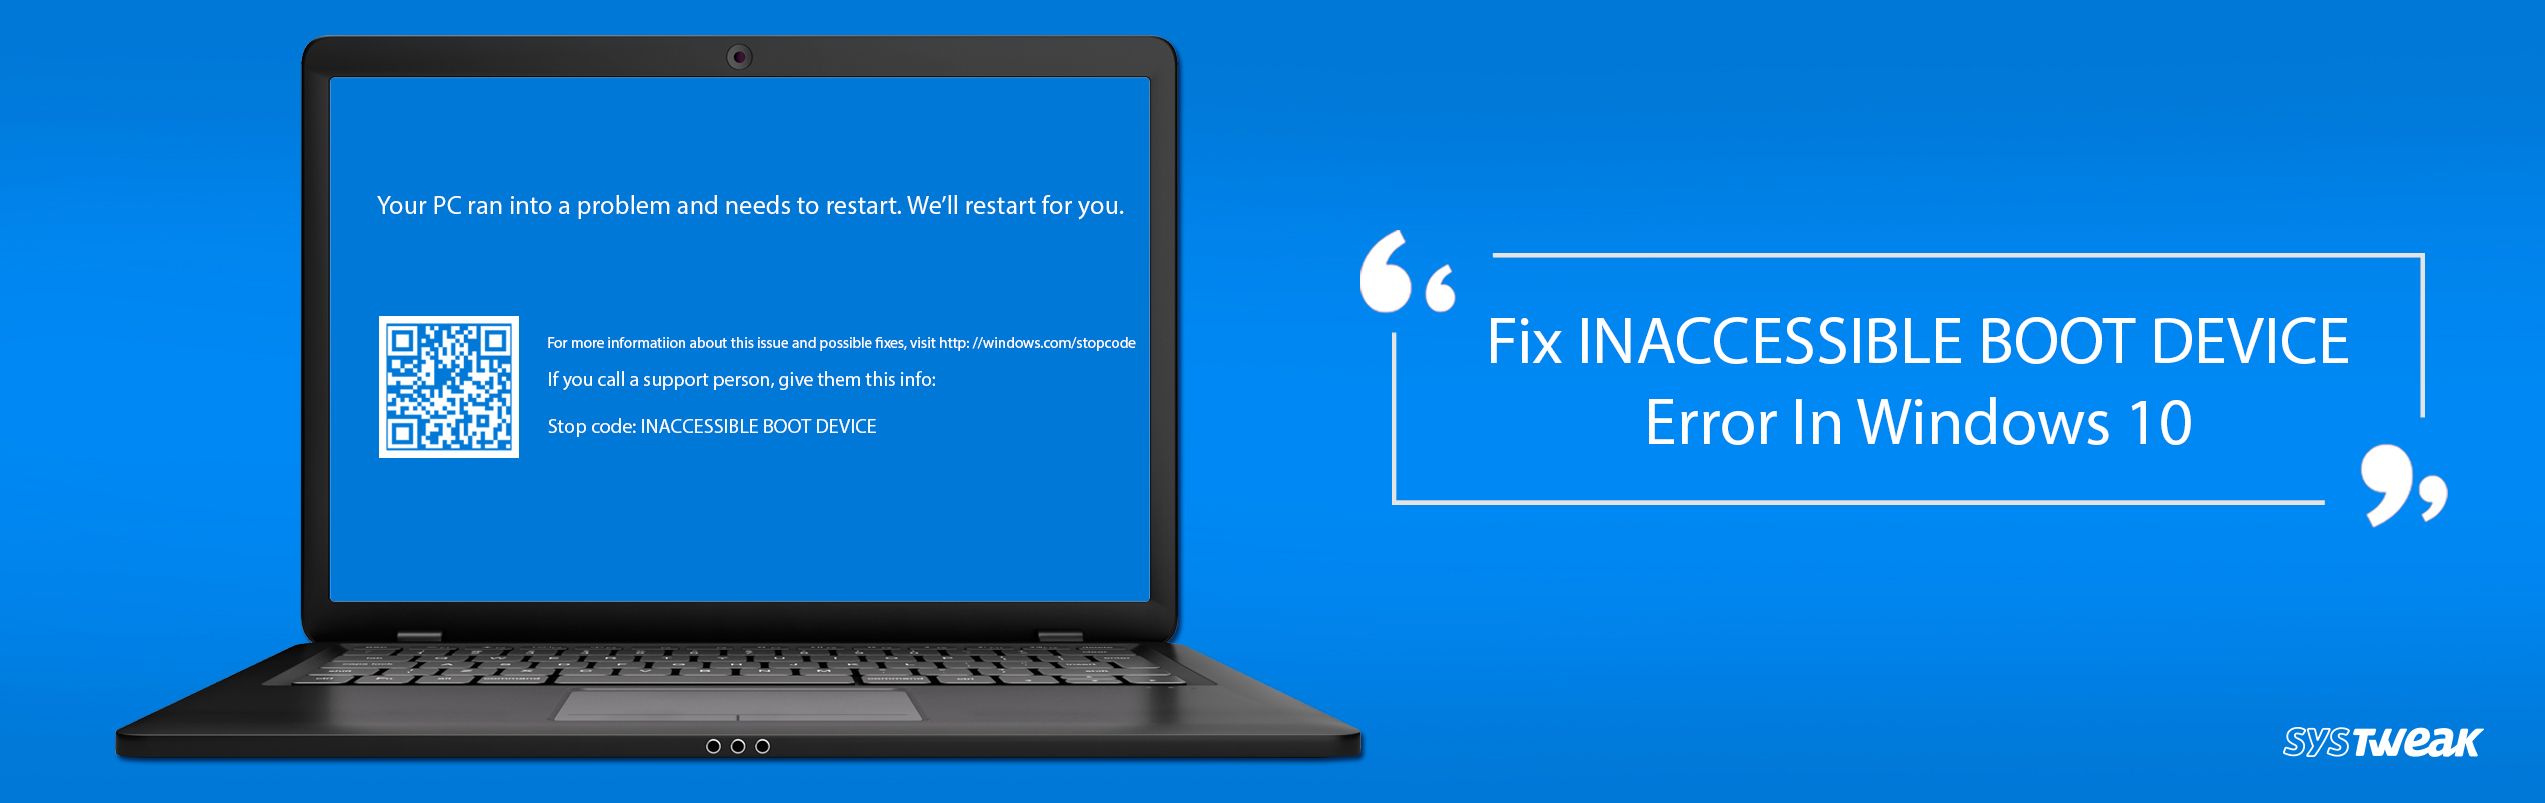 Methods To Fix INACCESSIBLE_BOOT_DEVICE Error In Windows 10